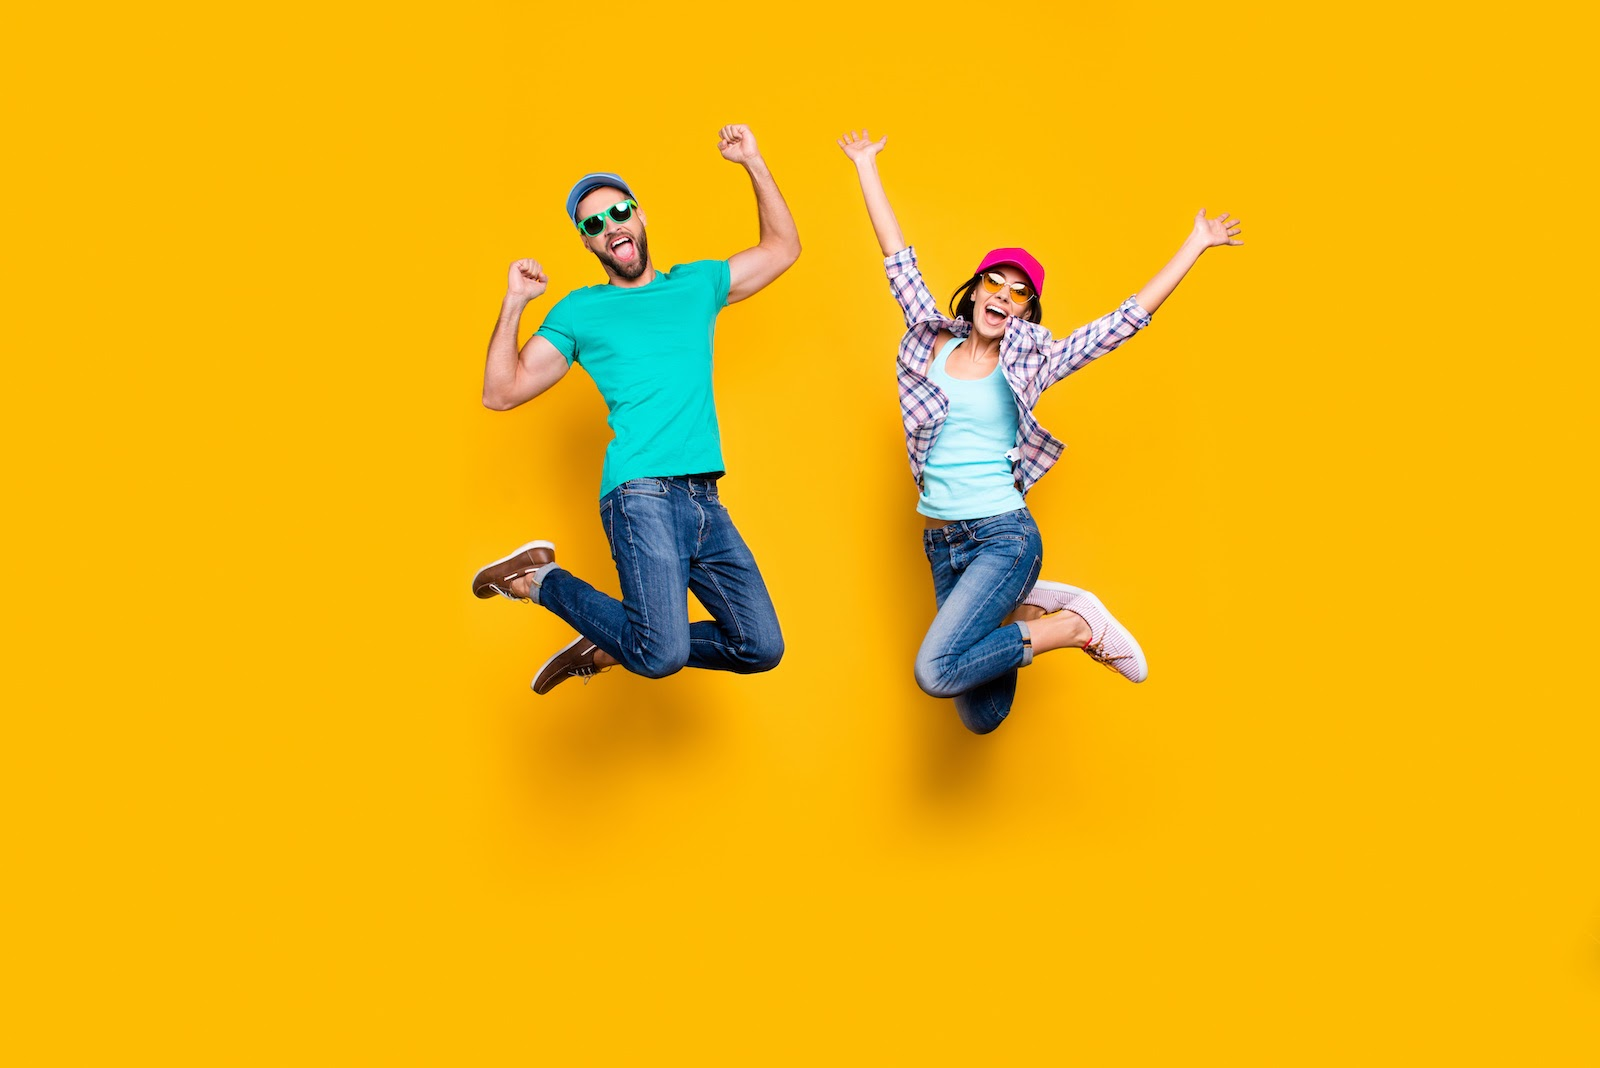 Virtual team members jumping up in excitement in front of a yellow background